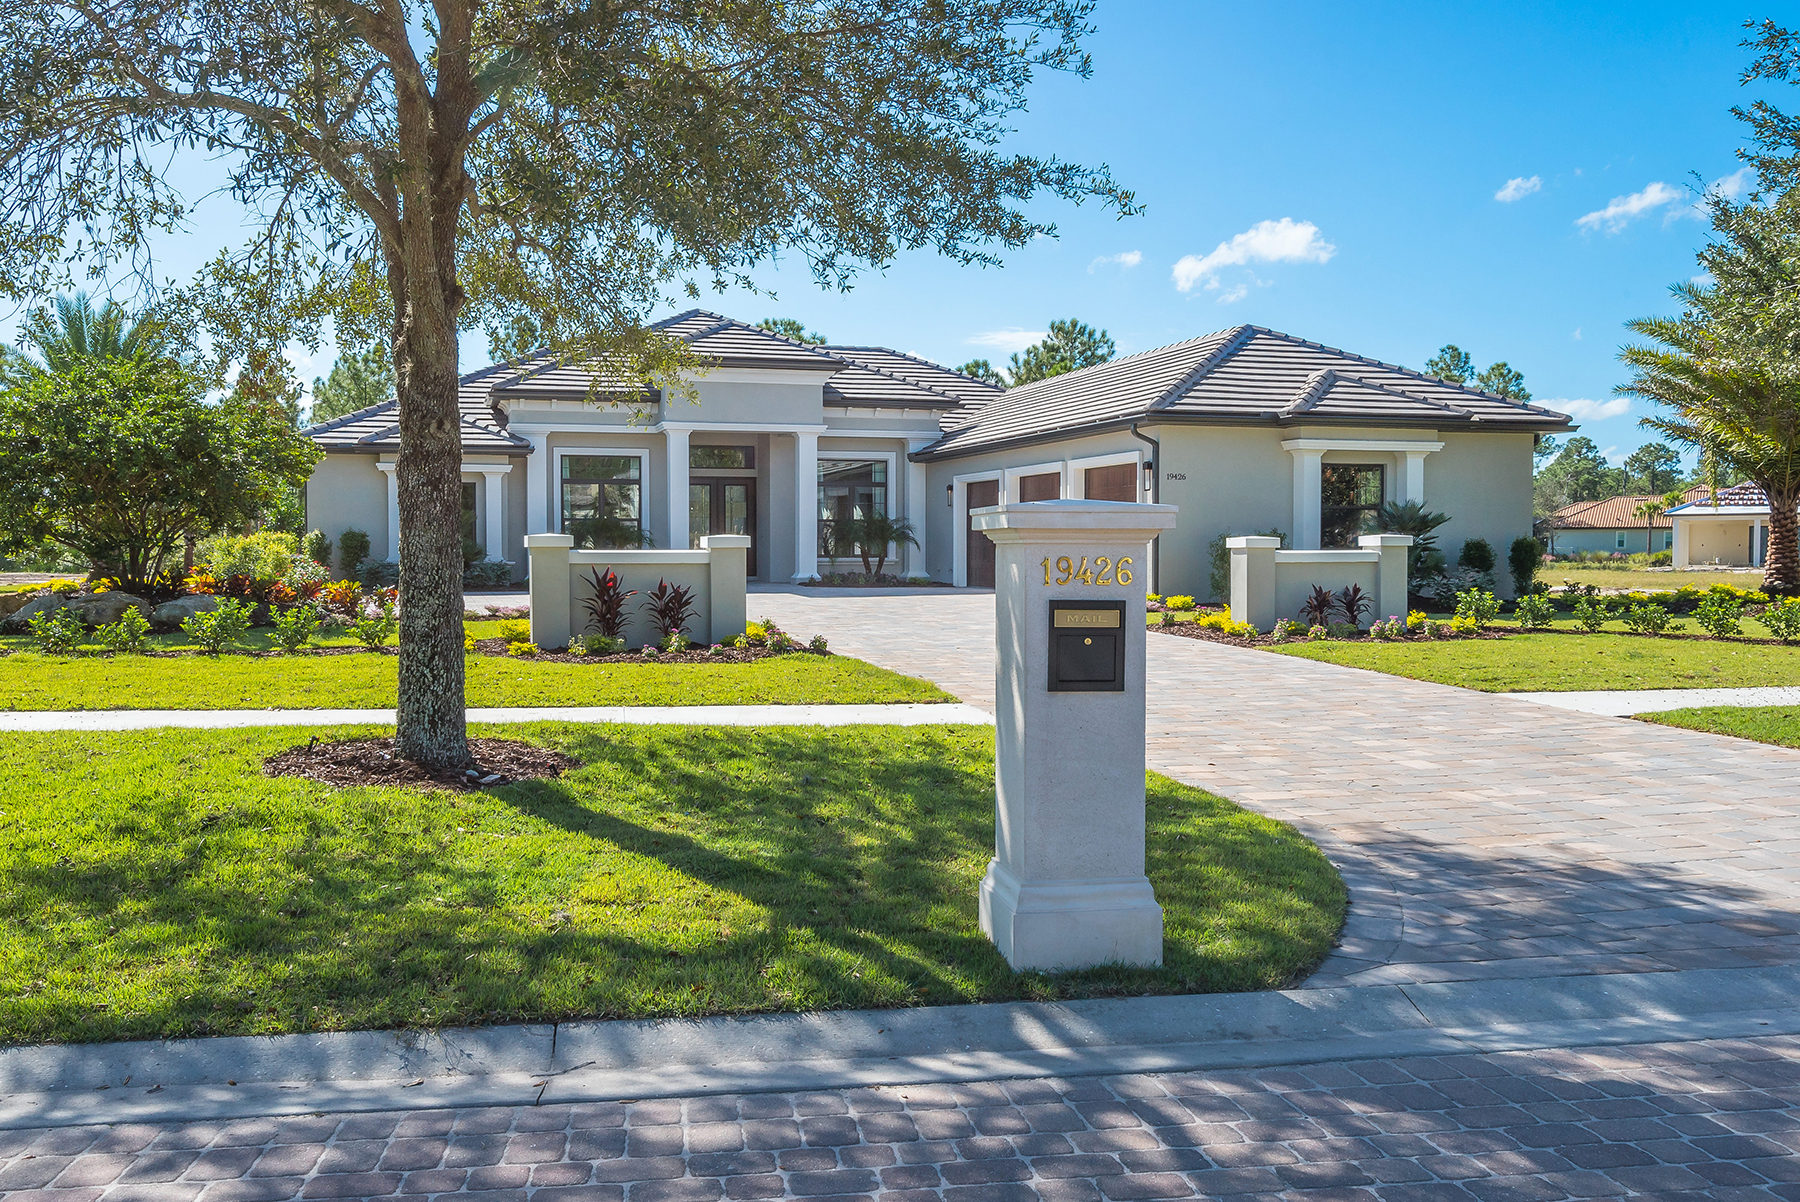 Single Family Home for Sale at THE CONCESSION 19426 Beacon Park Pl Bradenton, Florida, 34202 United States